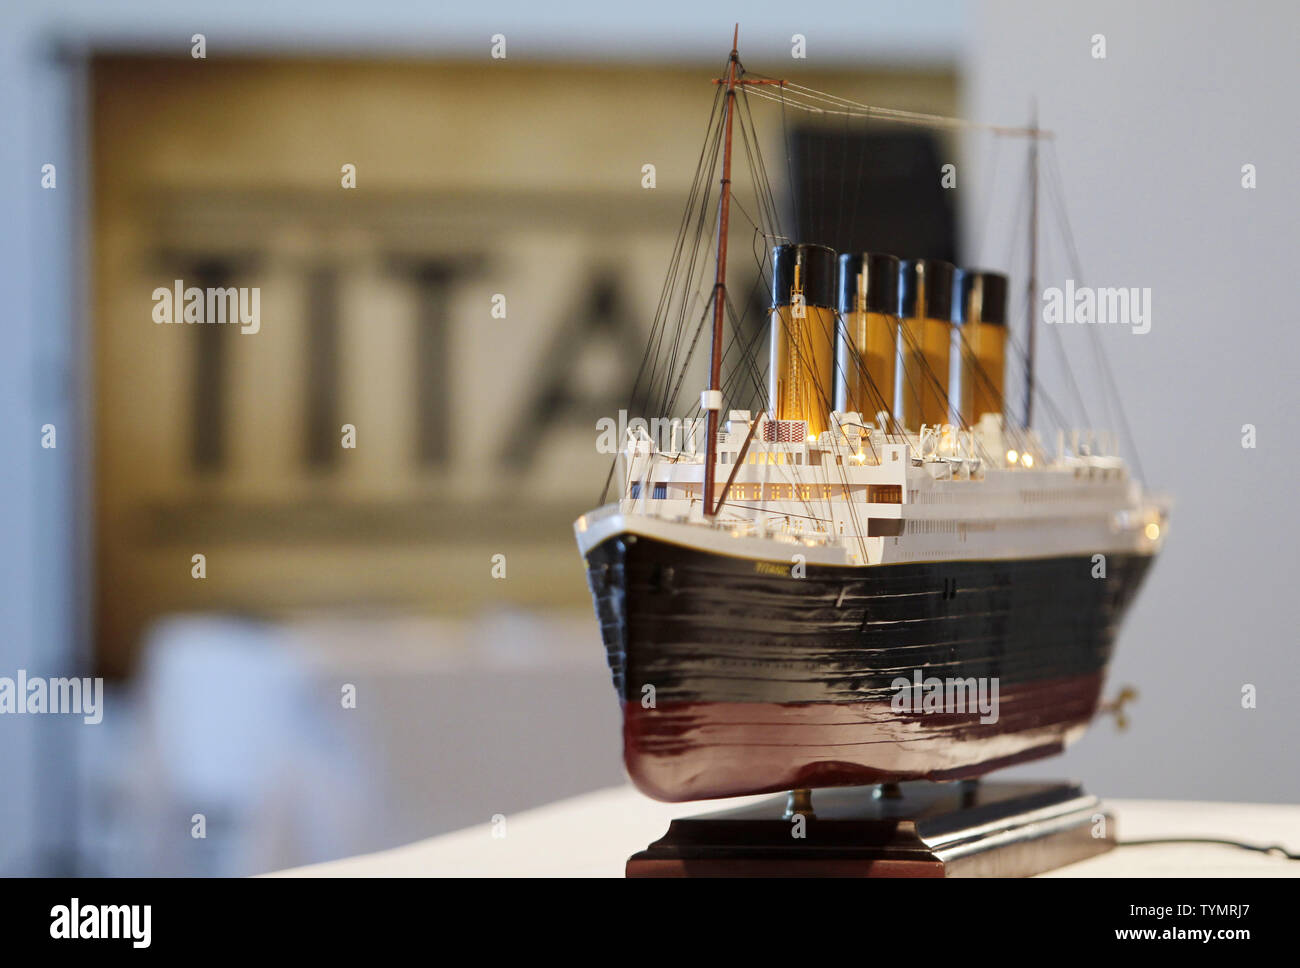 A model of the RMS Titanic sits on a table near where Artifacts recovered from the wreck site of the on display before being auctioned at the Intrepid Sea, Air & Space Museum in New York City on January 5, 2012. The auction will take place on April 11, 2012 on the 100 year anniversary of the ships maiden voyage and will be sold as one single collection.    UPI/John Angelillo - Stock Image